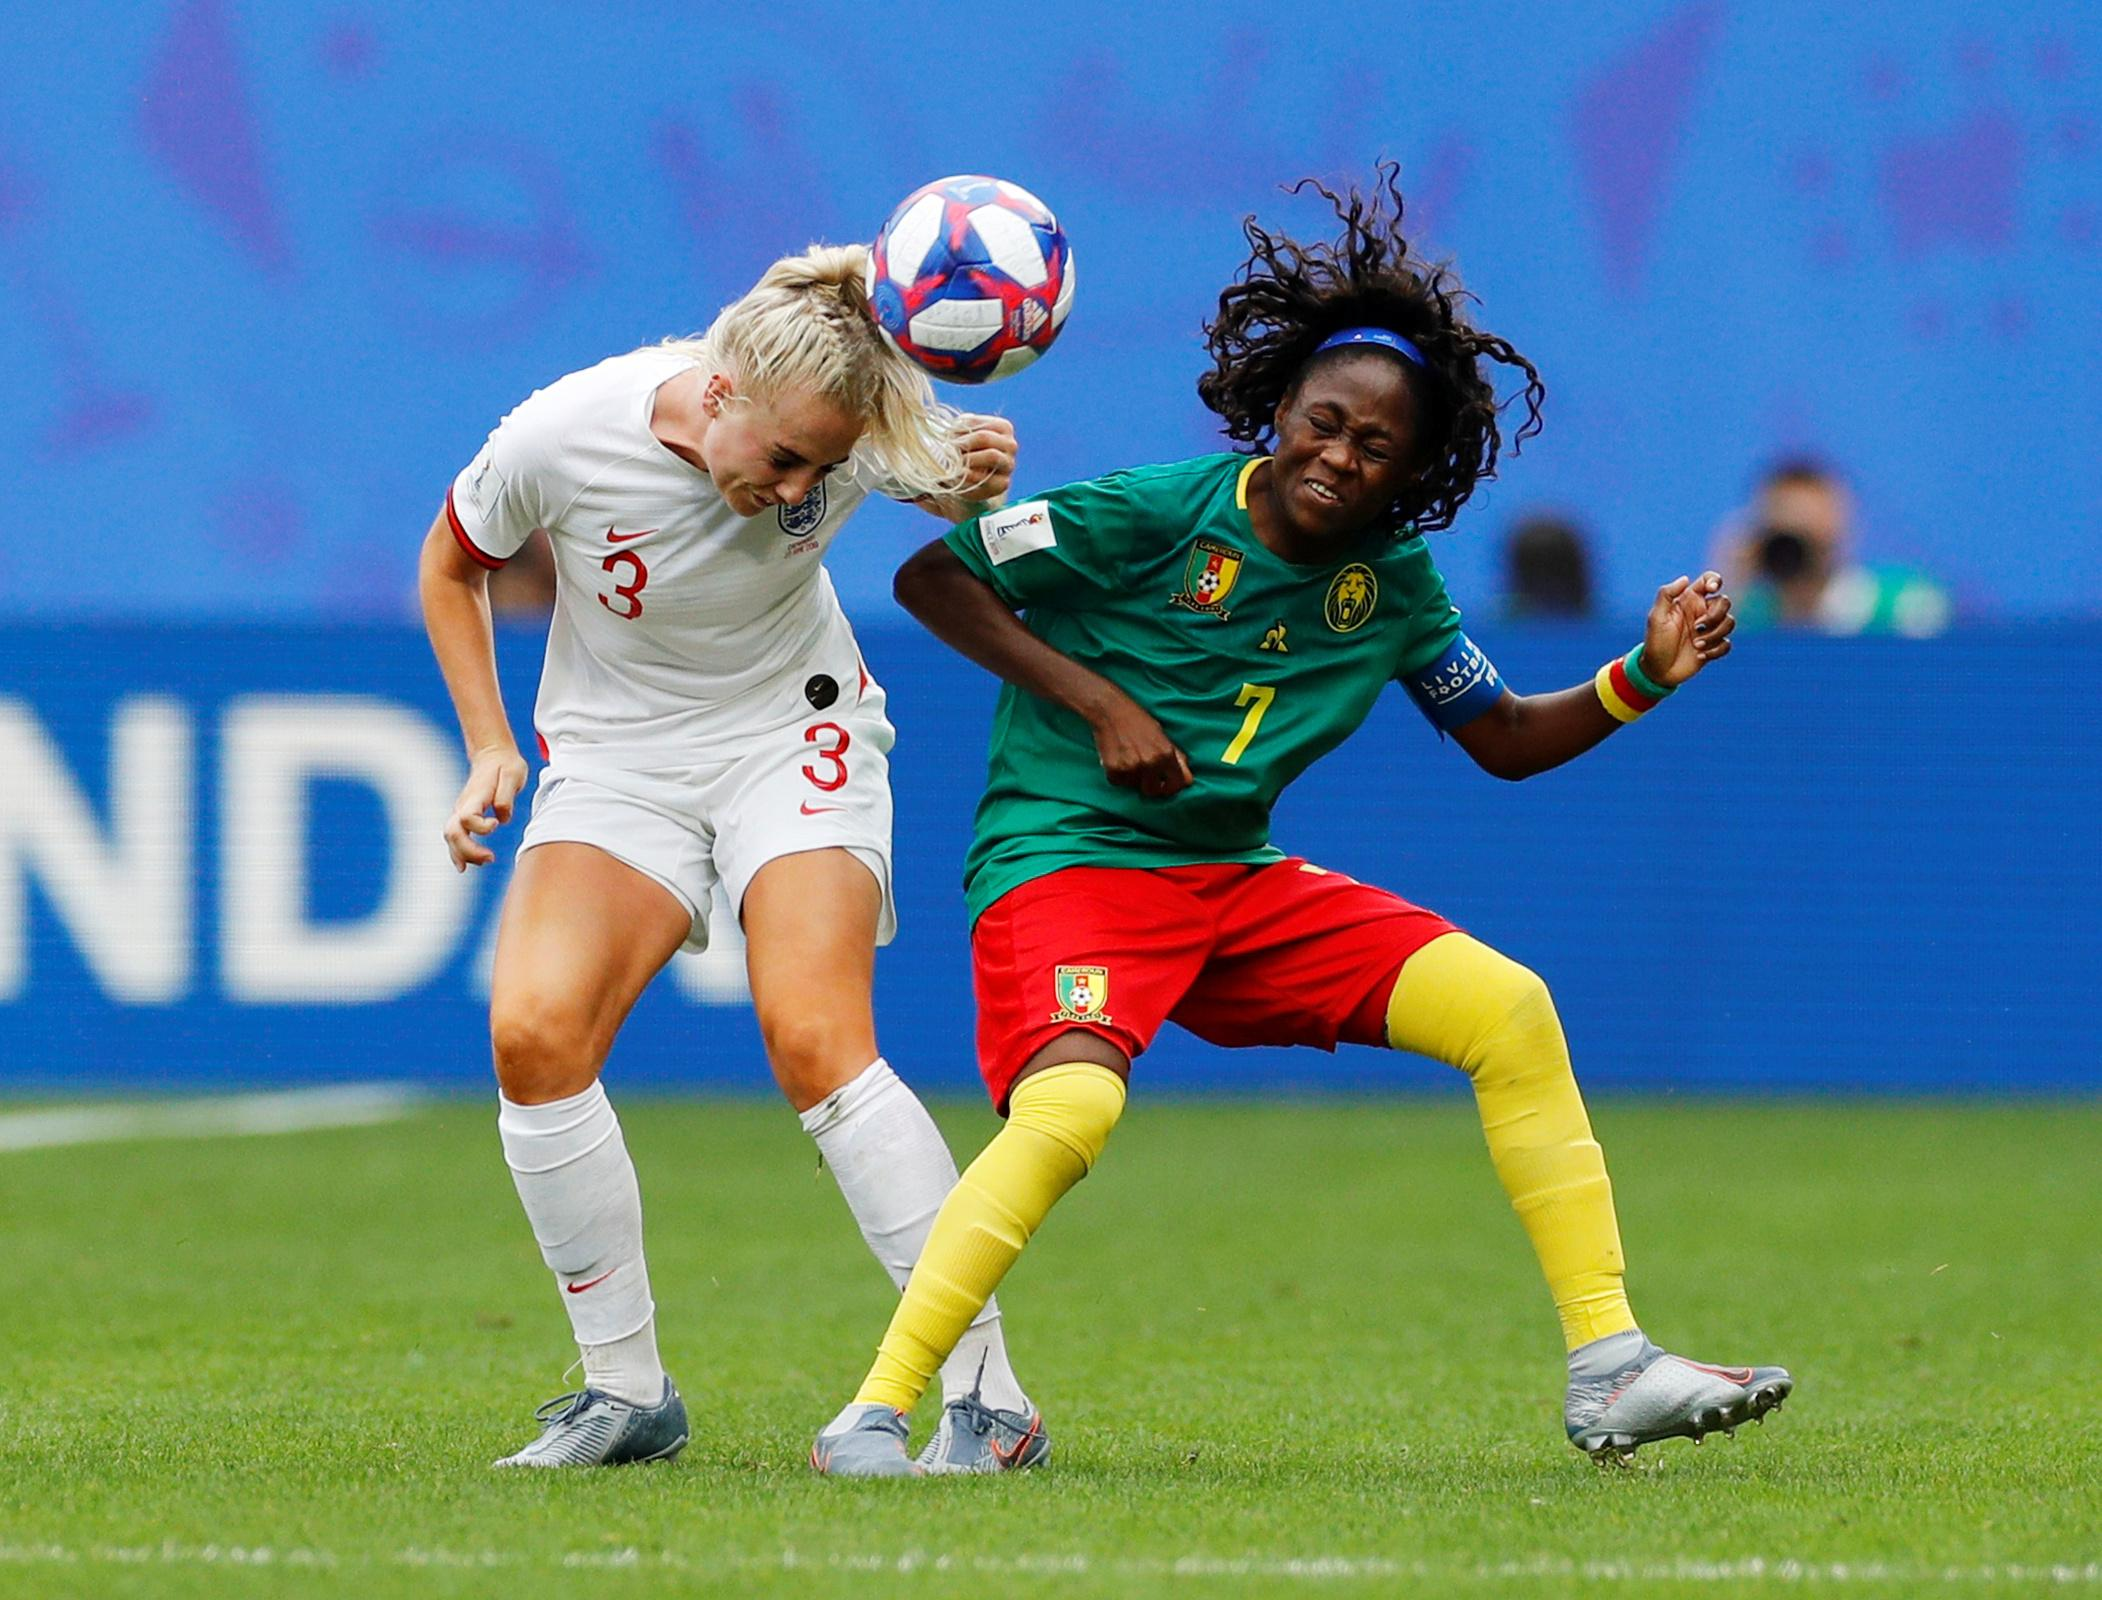 VAR in the spotlight again as Cameroon fume over offside calls